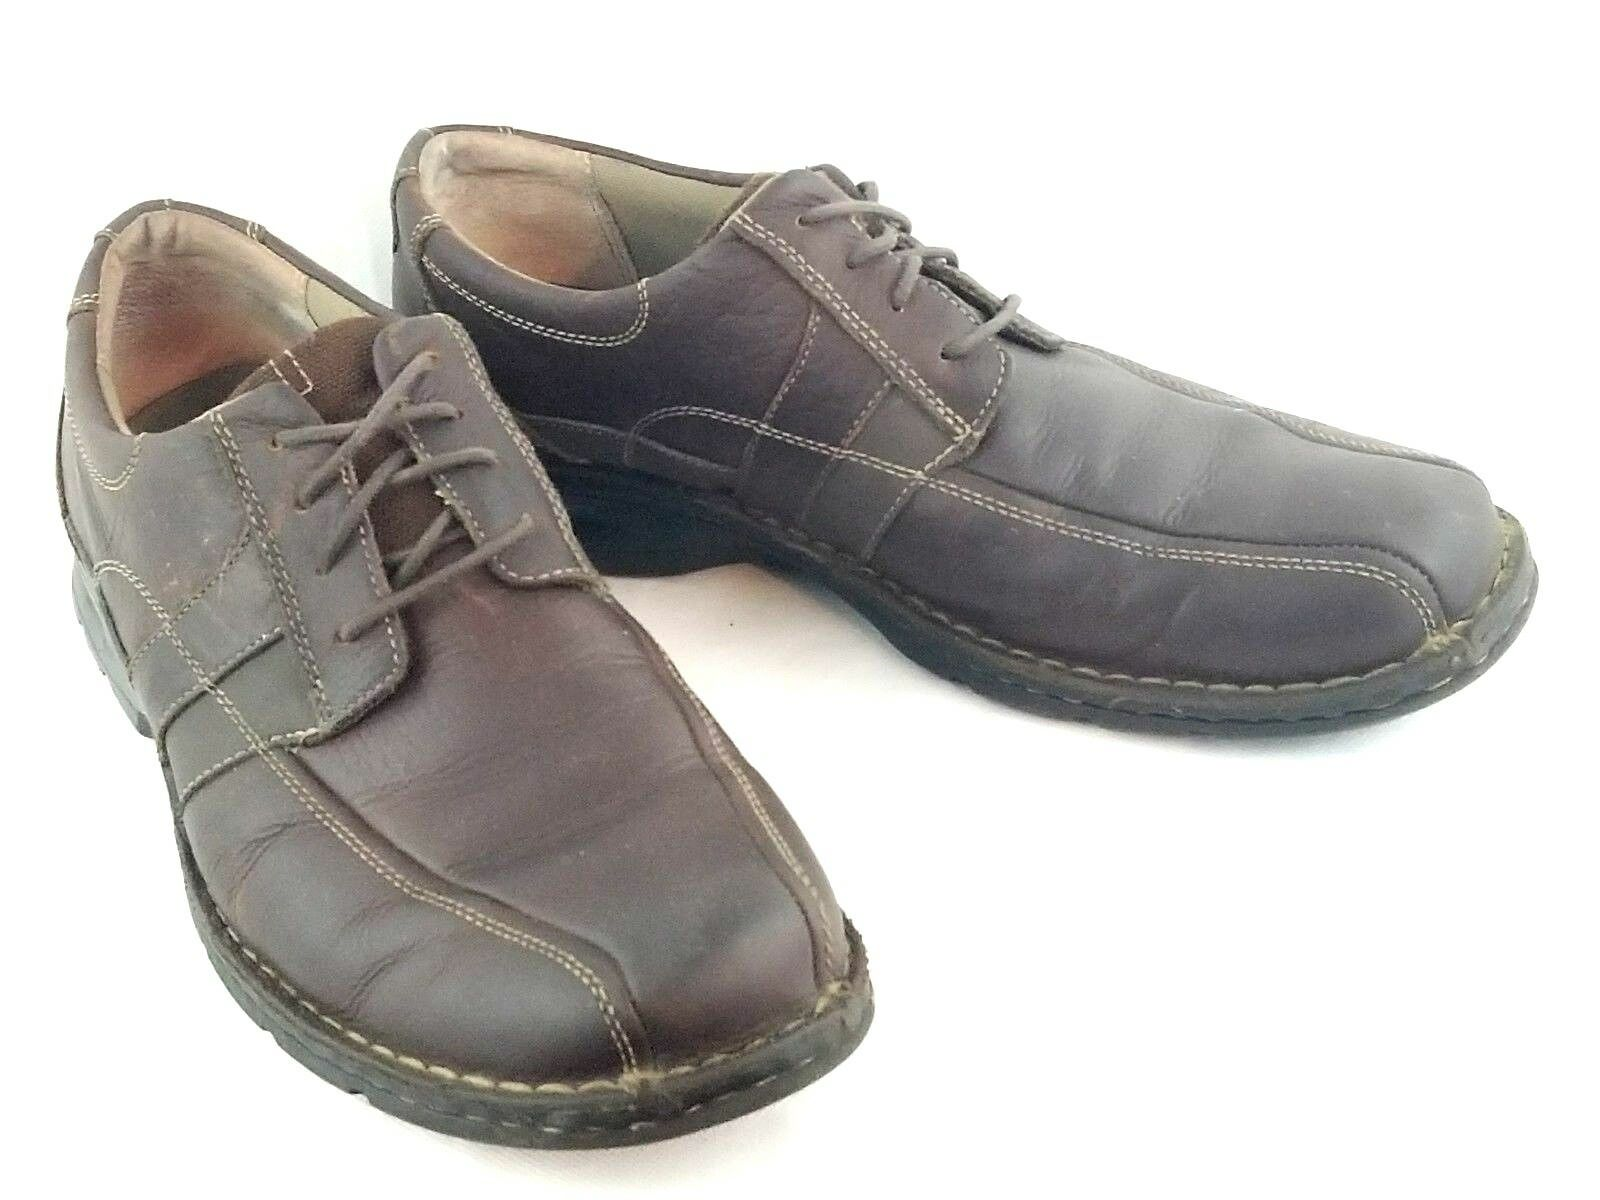 Clarks Mens shoes Brown Oiled Leather Lace Up Oxford Walking shoes 86235 Sz 12 M